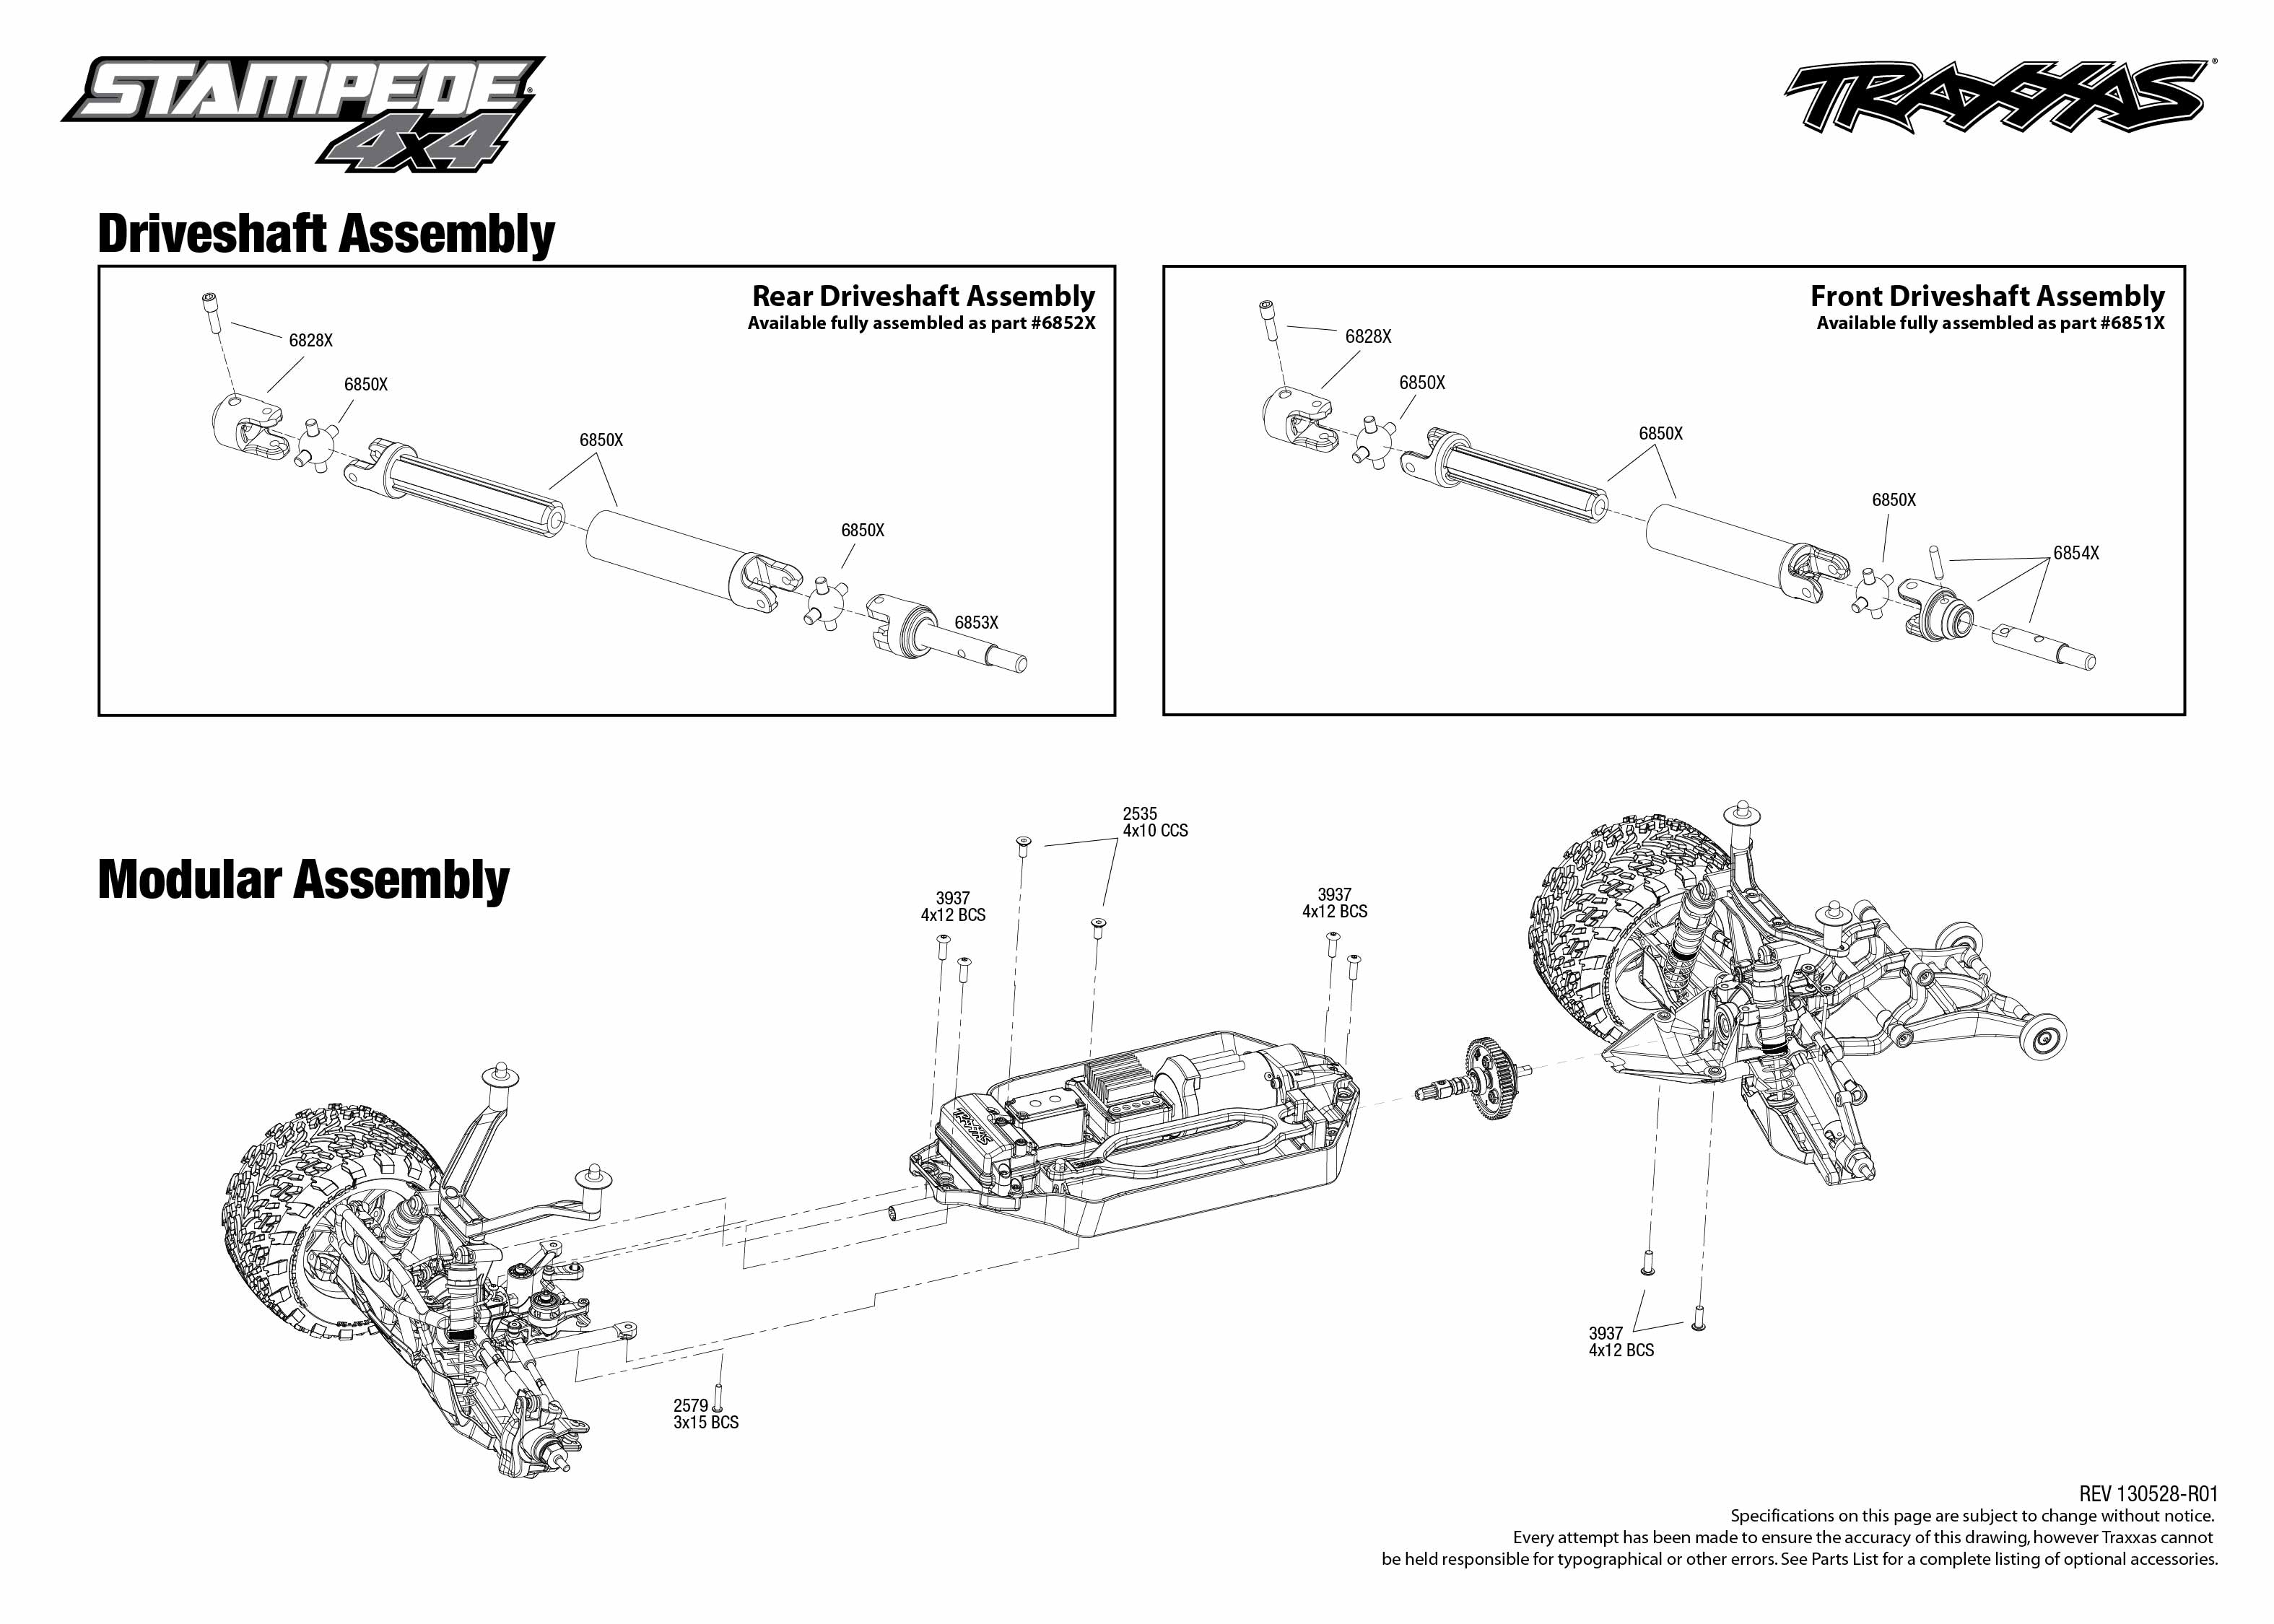 Traxxas stampede vxl parts diagram traxxas bandit parts diagram traxxas nitro slash parts pooptronica Images